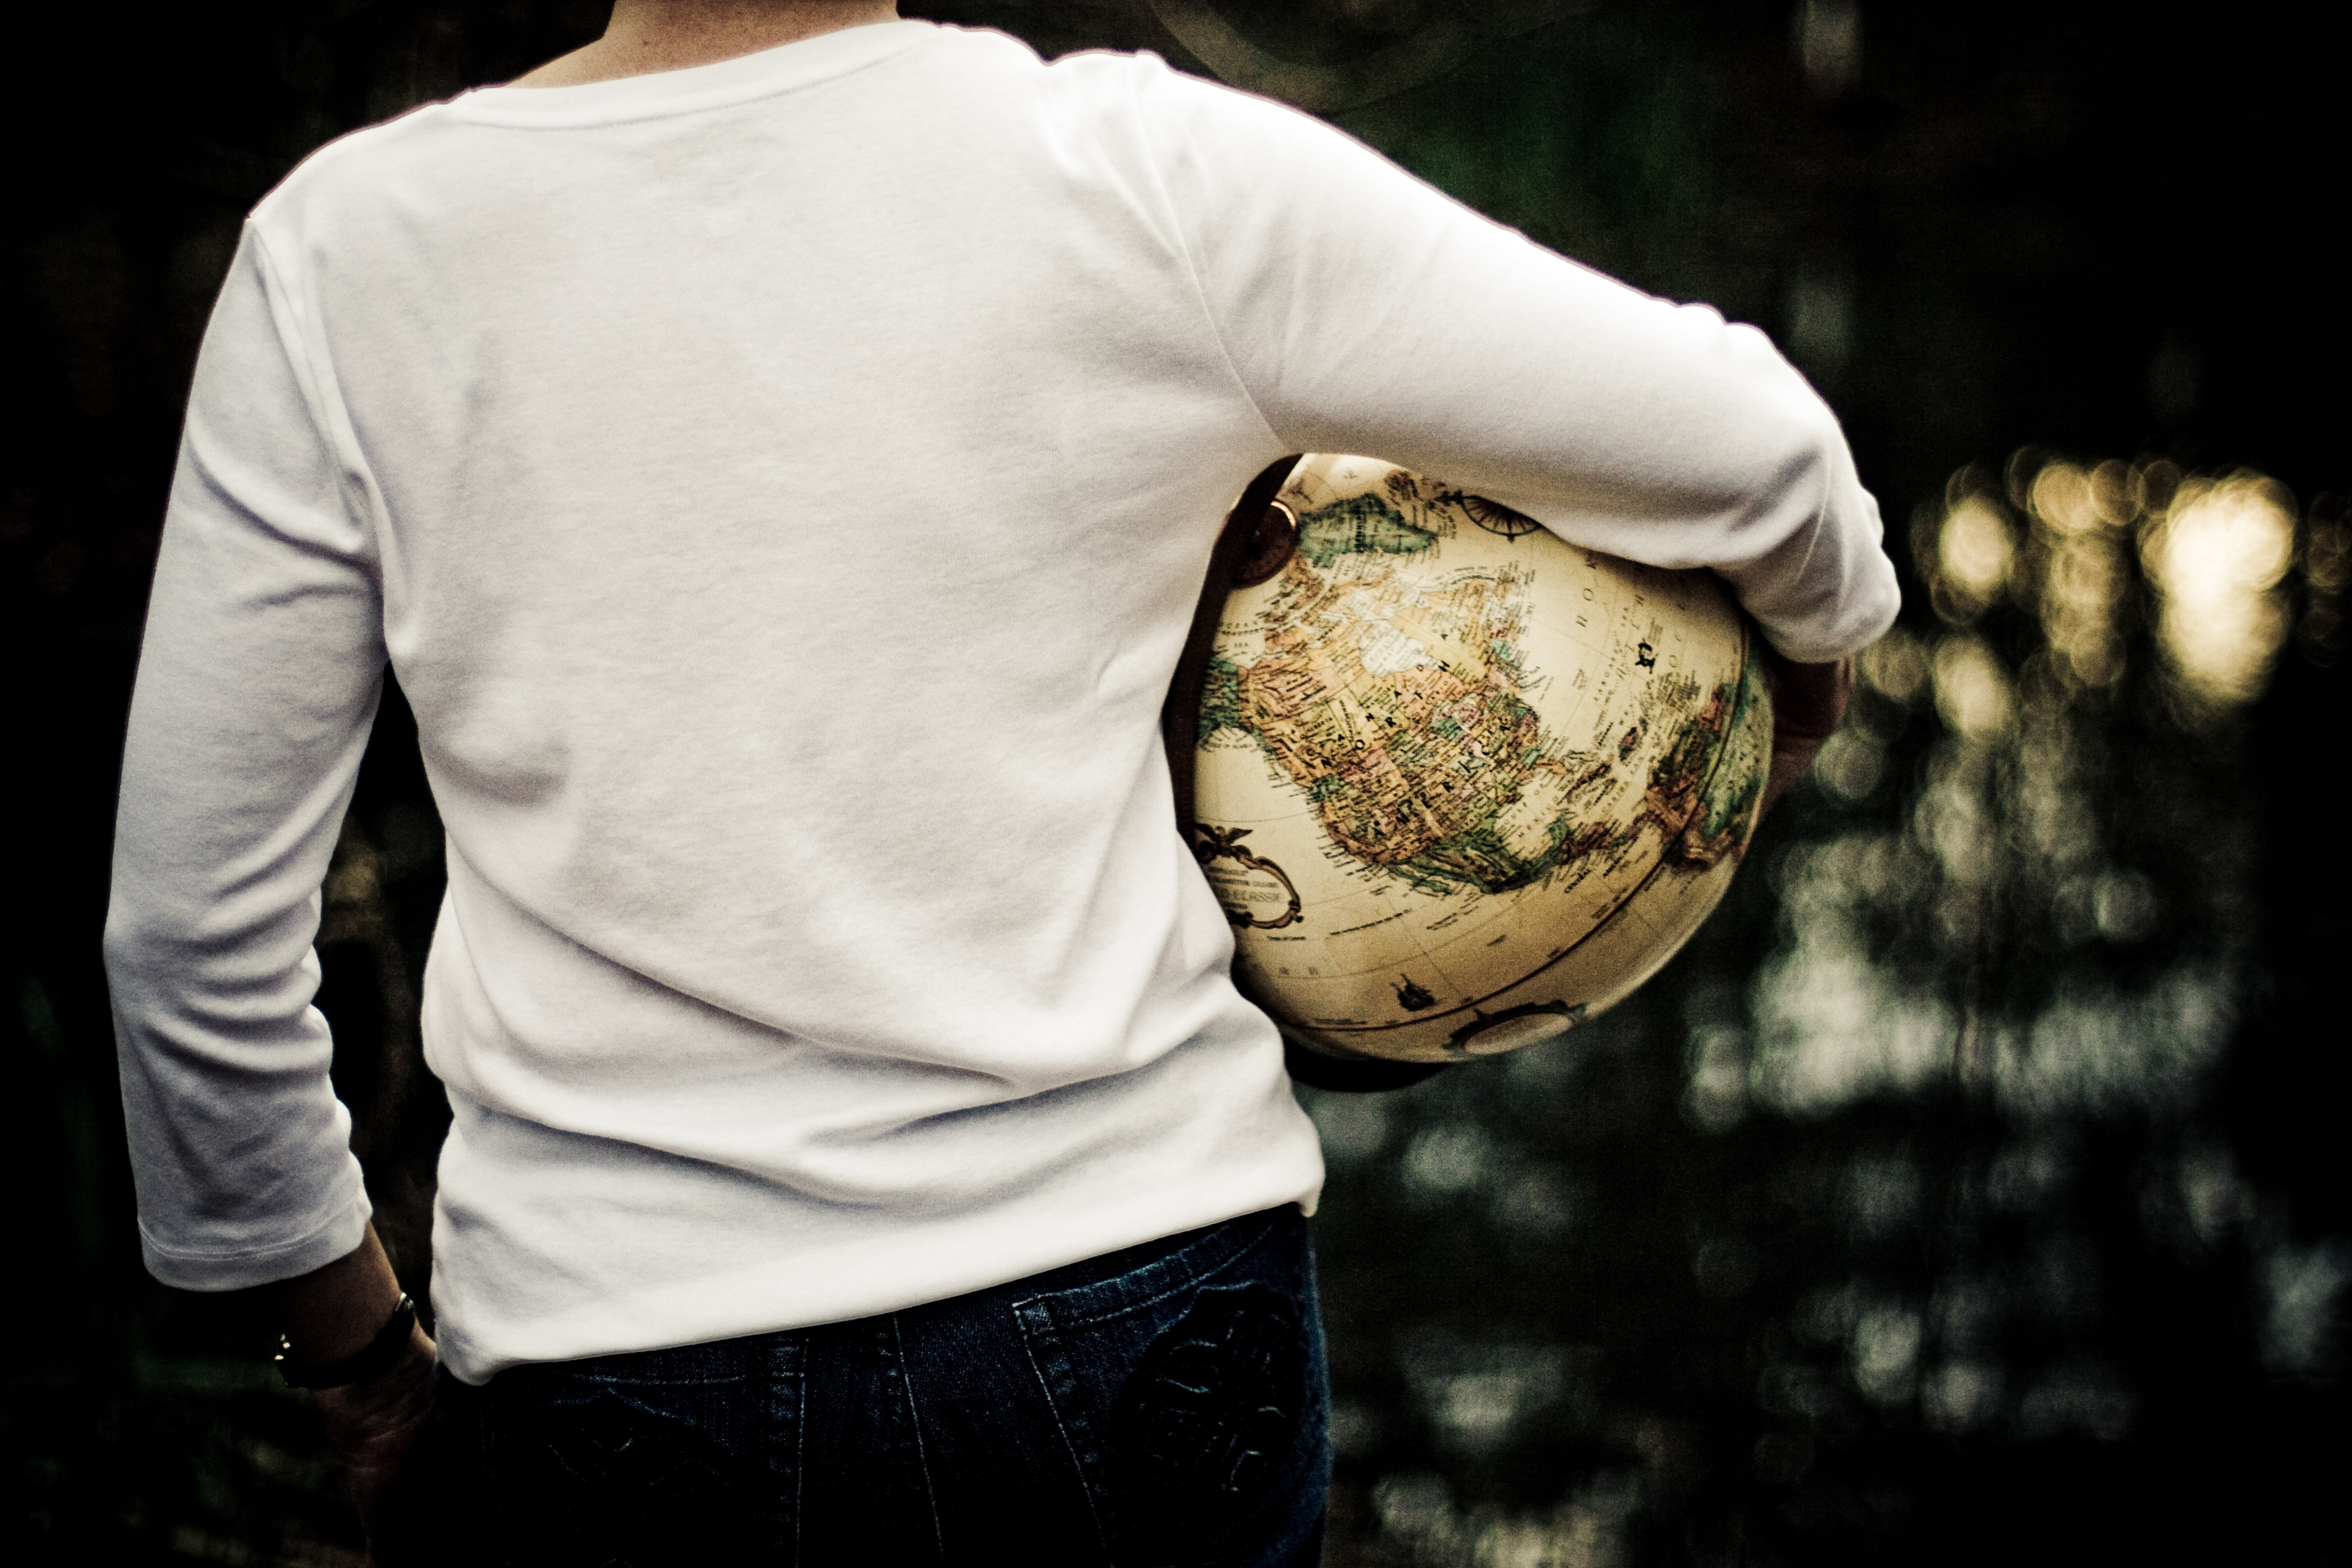 A woman from behind from the waist up, wearing blue jeans and a white shirt, holding an antique globe under one arm, and looking into the distance.